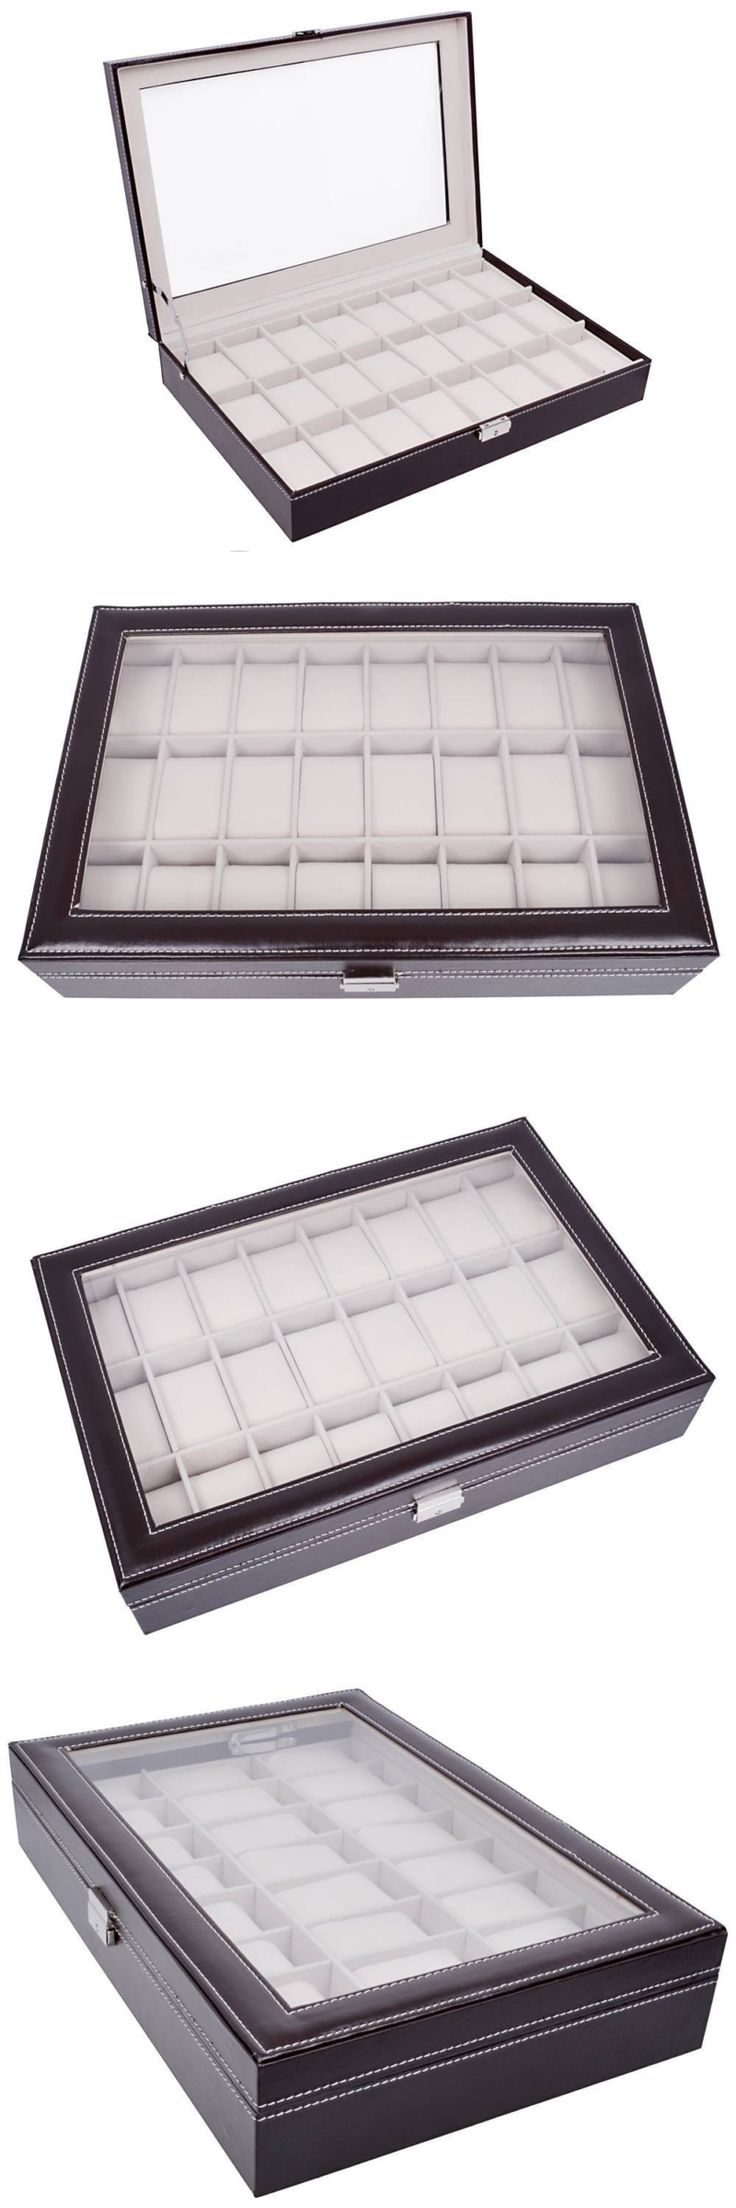 Watch 168164: Tms Large Brown Leather 24 Grid Watch Display Case Glass Top Jewelry Box Organiz BUY IT NOW ONLY: $35.89